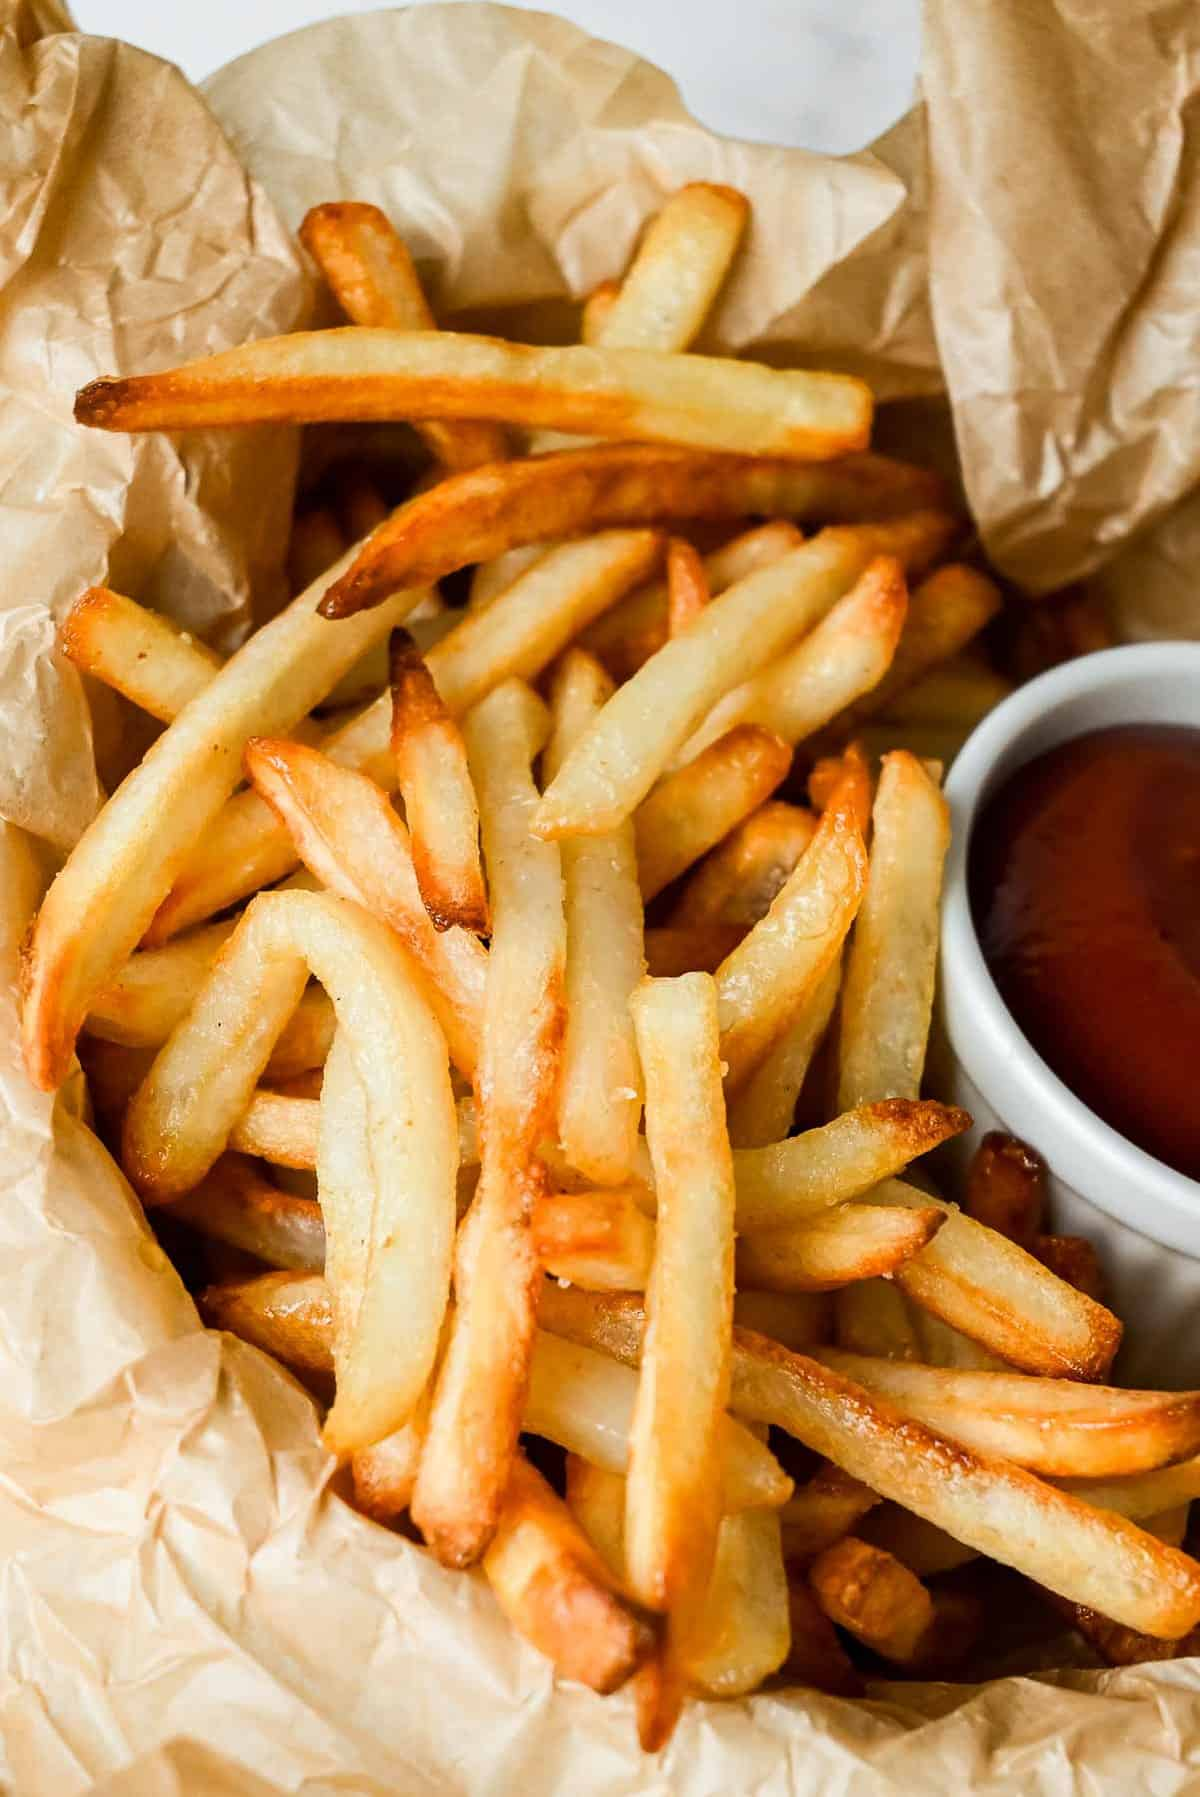 air fryer frozen french fries in a basket with ketchup